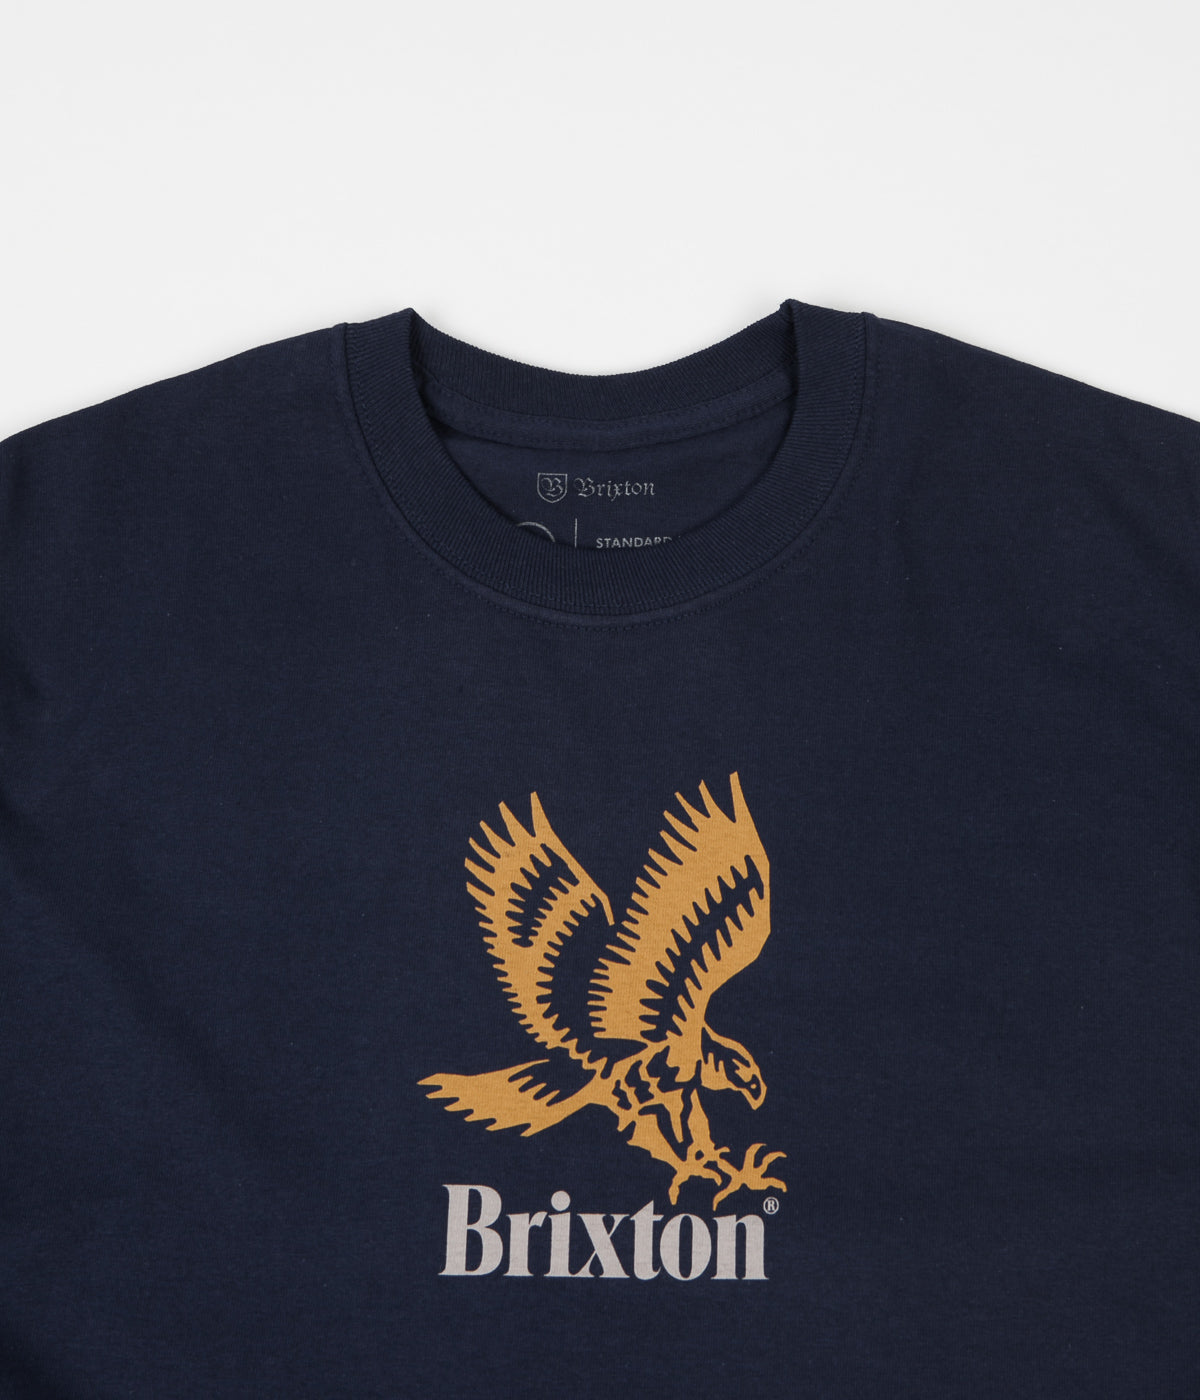 Brixton Descent III Long Sleeve T-Shirt - Navy